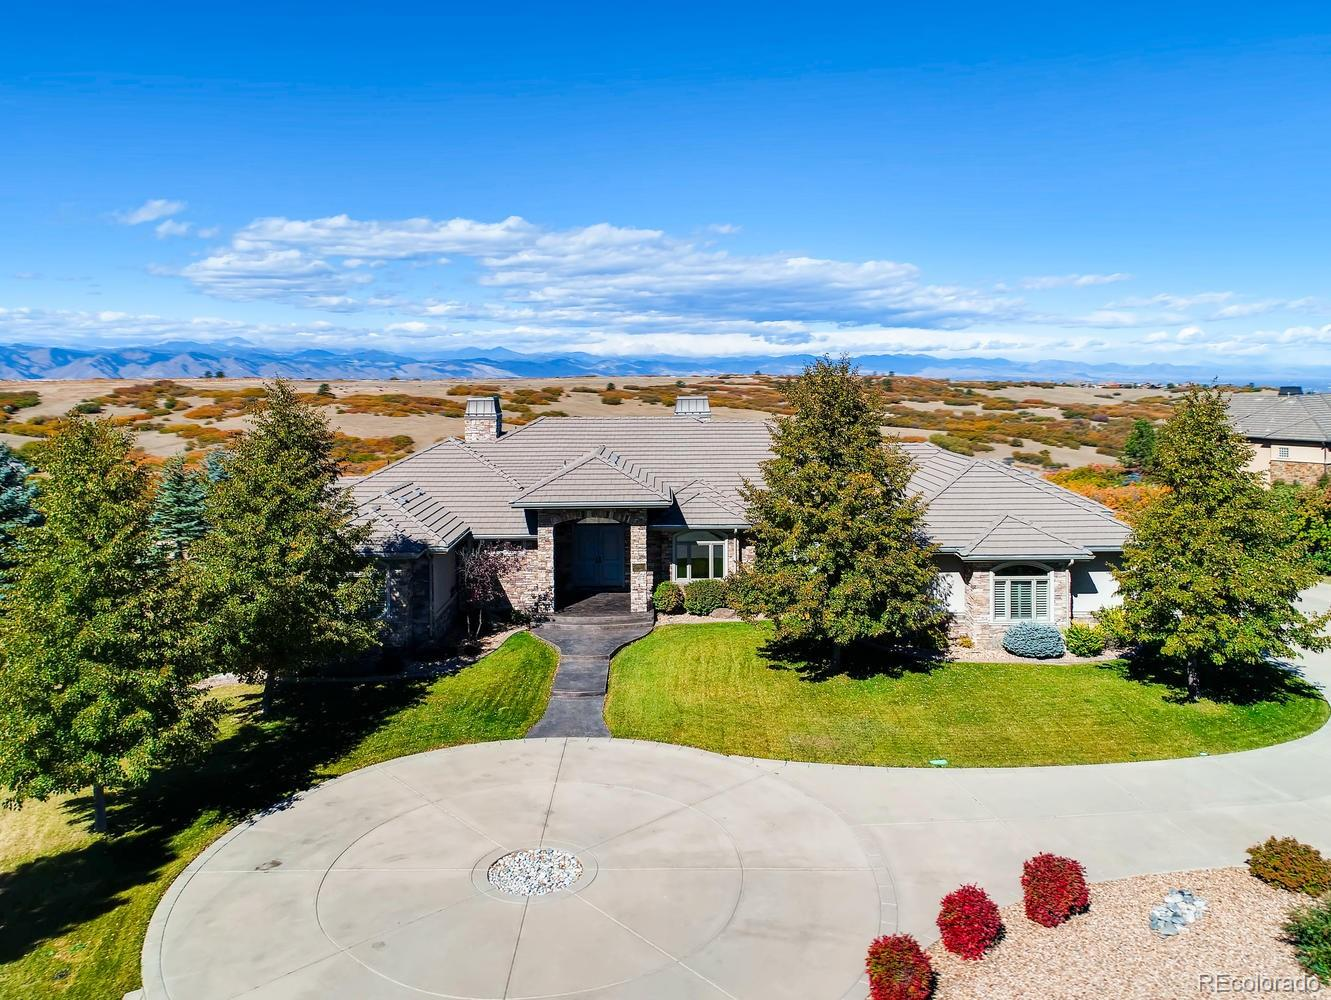 Breathtaking Mountain Views abound on this premium 1.95 acre lot backing to open space and overlooking Daniels Park!  This custom home was designed to provide spectacular views from all the living spaces including the great room, kitchen, nook and master suite. High ceilings and hand troweled walls throughout the home provide an elegant touch. The spacious William Ohs designed kitchen with Wolf and Sub-Zero appliances is laid out perfectly for entertaining. The kitchen nook was created with seamless glass panels to allow stunning unobstructed views of the front range. The great room has hideaway sliding doors that completely open the west wall to the deck, allowing the great room and deck to blend into one seamless entertaining and living space. The back deck spans the entire back of the home and has both covered and uncovered sections to allow you to enjoy the views and outdoors regardless of the weather. Immaculately maintained and ready to move into, but priced to allow you to update to your tastes if preferred!  The comfortable master suite has stunning views of Daniels Park and mountains with access to the back deck.  The lower level has the feel of a walkout with full sized windows, allowing in natural light.  Unfinished space in the lower level allows the possibility for adding another bedroom and bath or adding an additional entertaining area.  The basement also has a separate entrance directly to the garage.  The oversized, heated 3 car garage has an epoxy floor and workspace for the hobbyist. There is space available to add a separate 1400 square foot detached garage for the car enthusiast or RV owner.  The advanced lighting system throughout the home has one touch celestial clock control to provide the perfect ambiance for any situation.  This home was designed with a maintenance free stucco and stone exterior and has a private gated entrance.